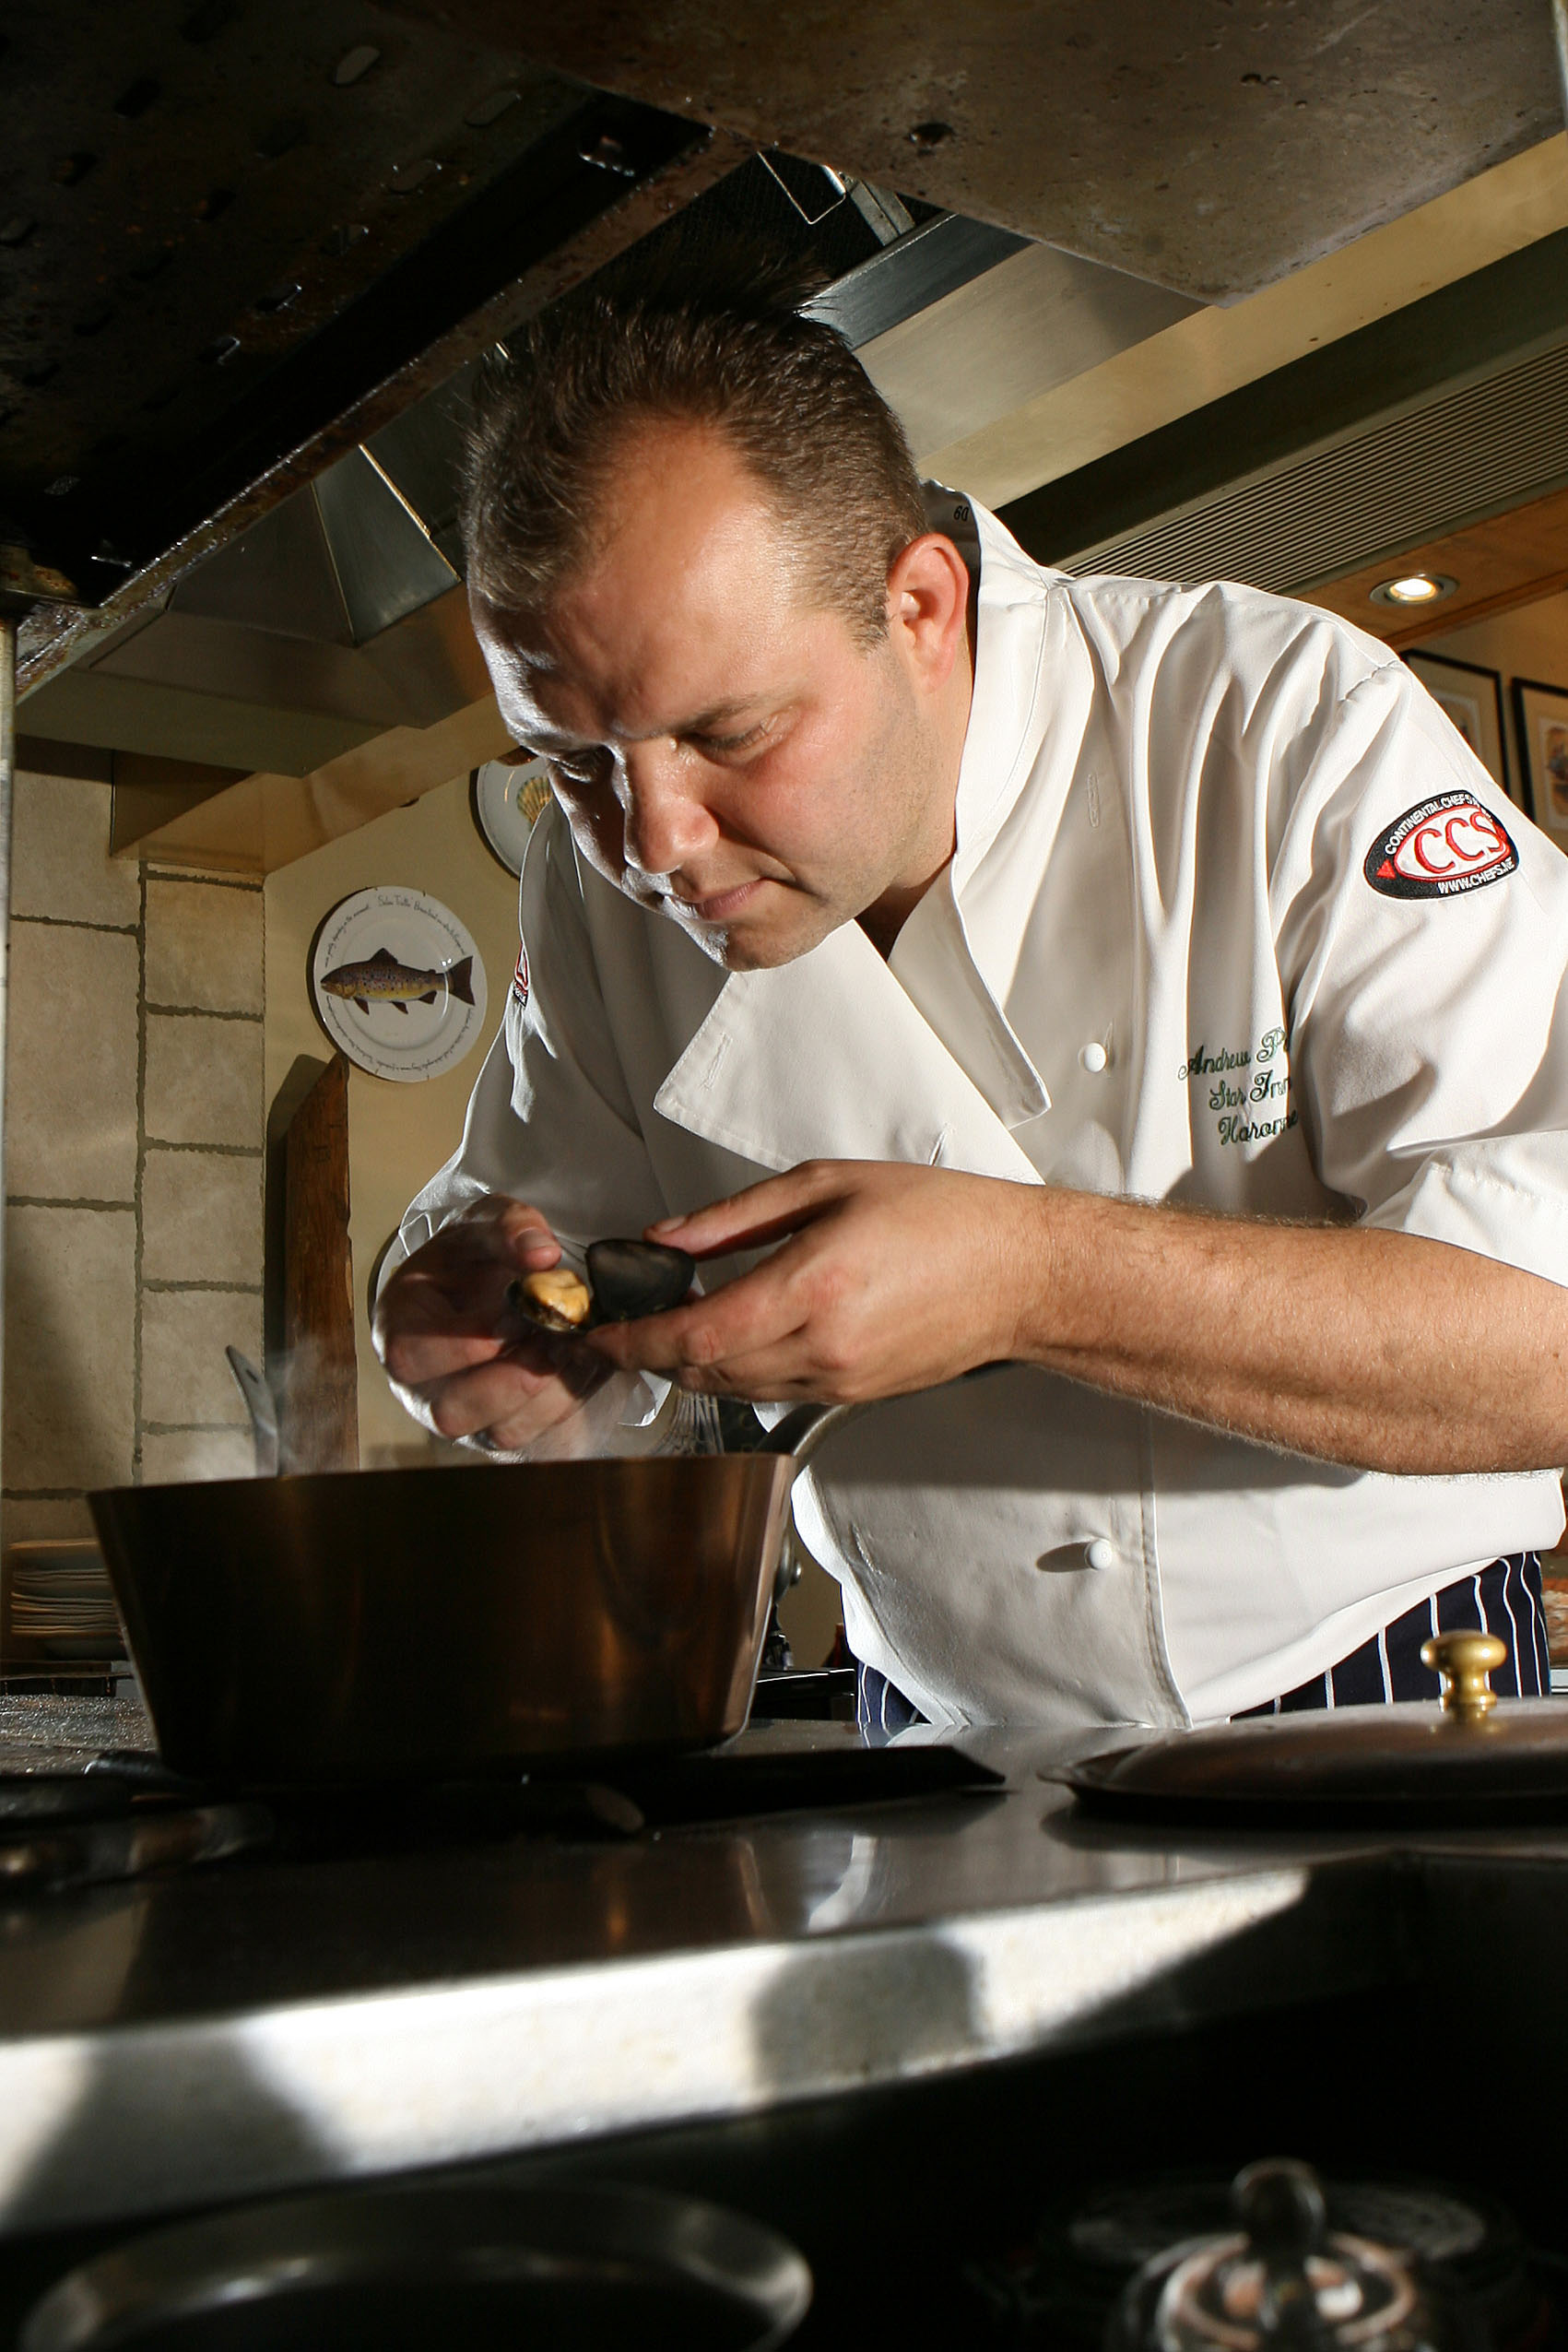 COVETED AWARD: Chef Andrew Pern, at The Star Inn, Harome, near Helmsley